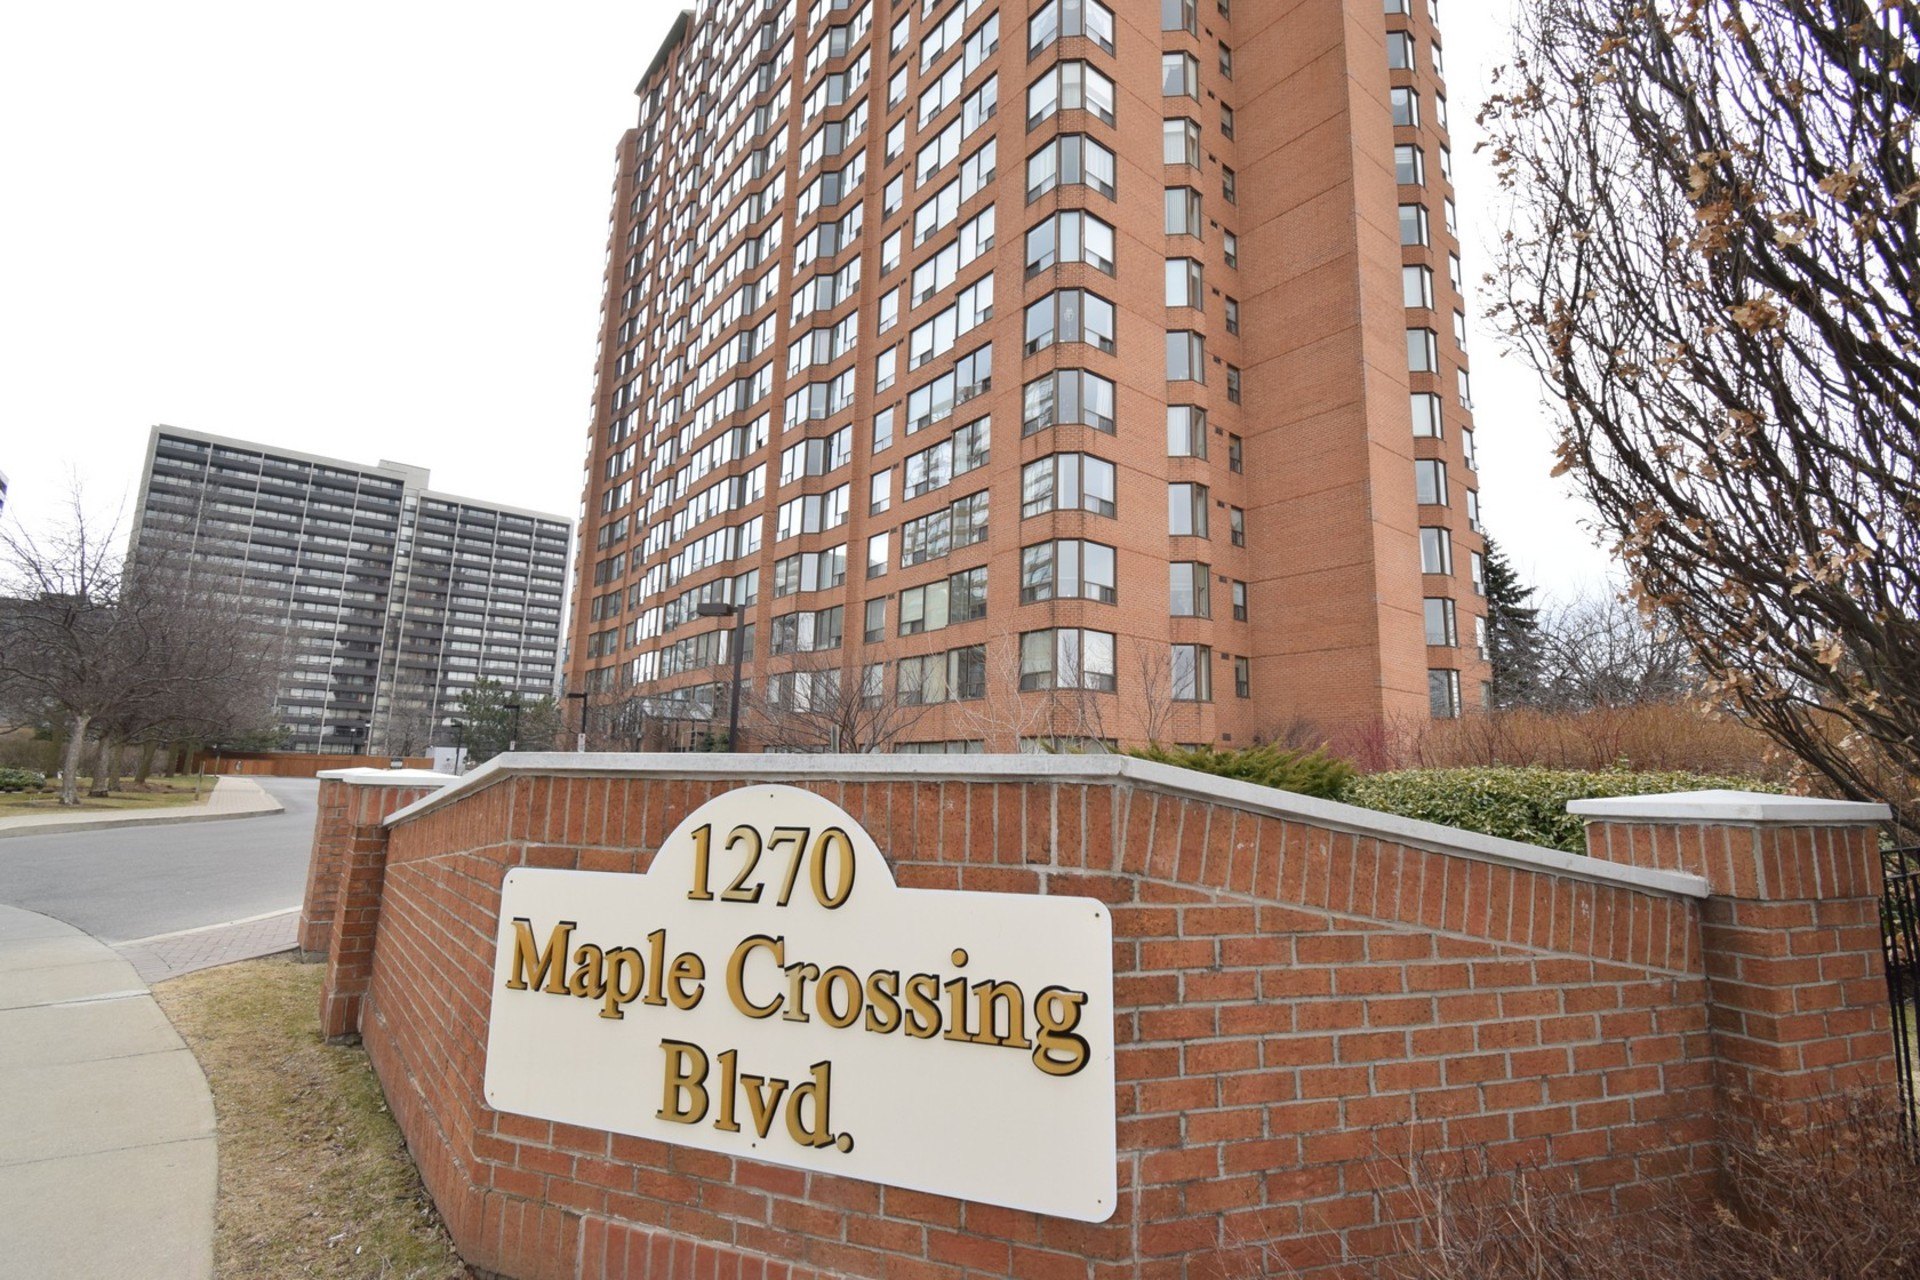 705 - 1270 Maple Crossing Blvd, Brant, Burlington